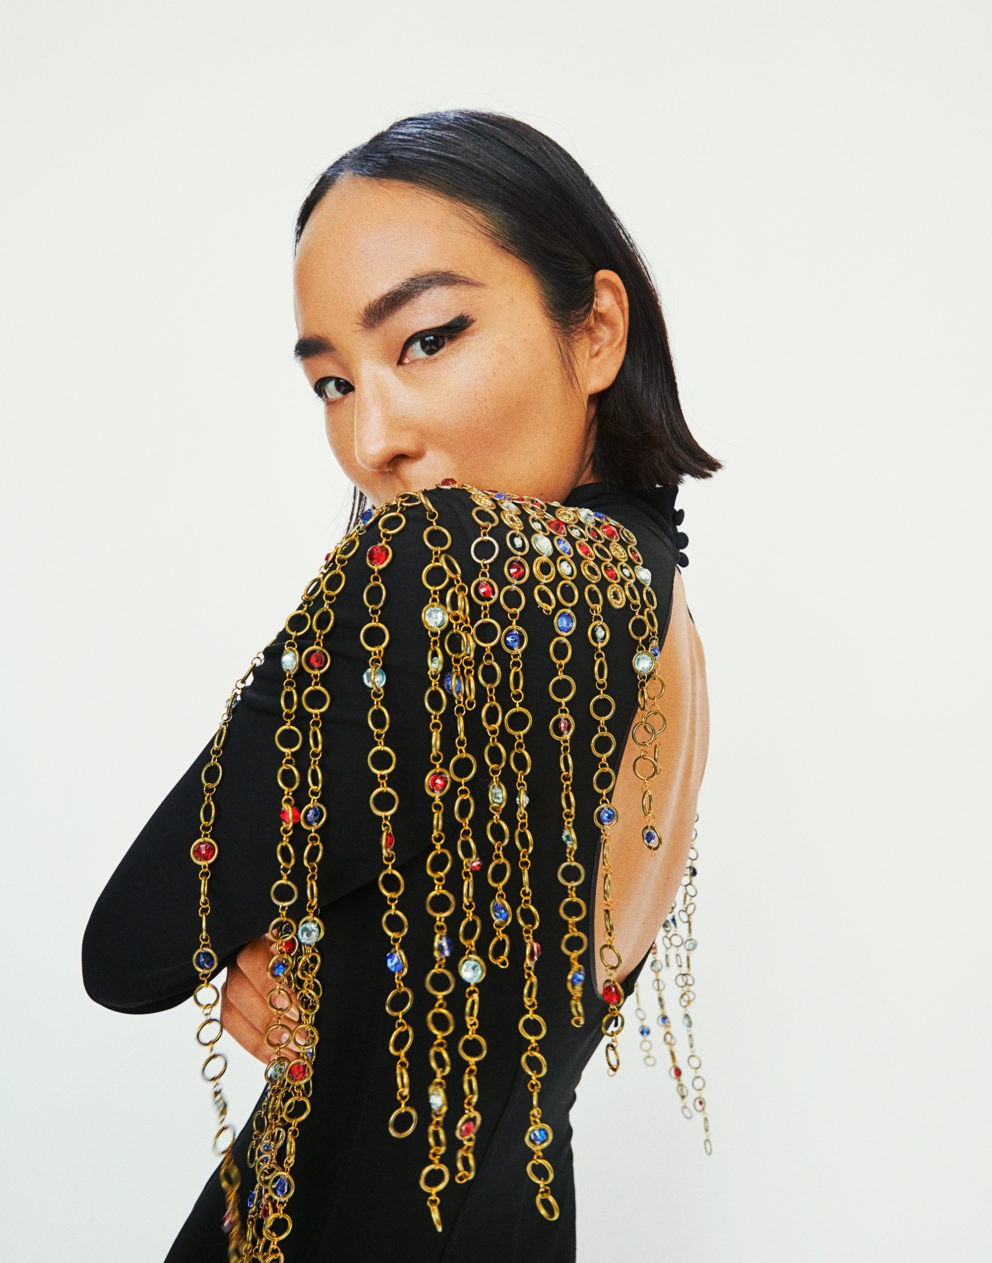 191020 0050 Sbjct Greta Lee 129 By Christian Chogstedt Web